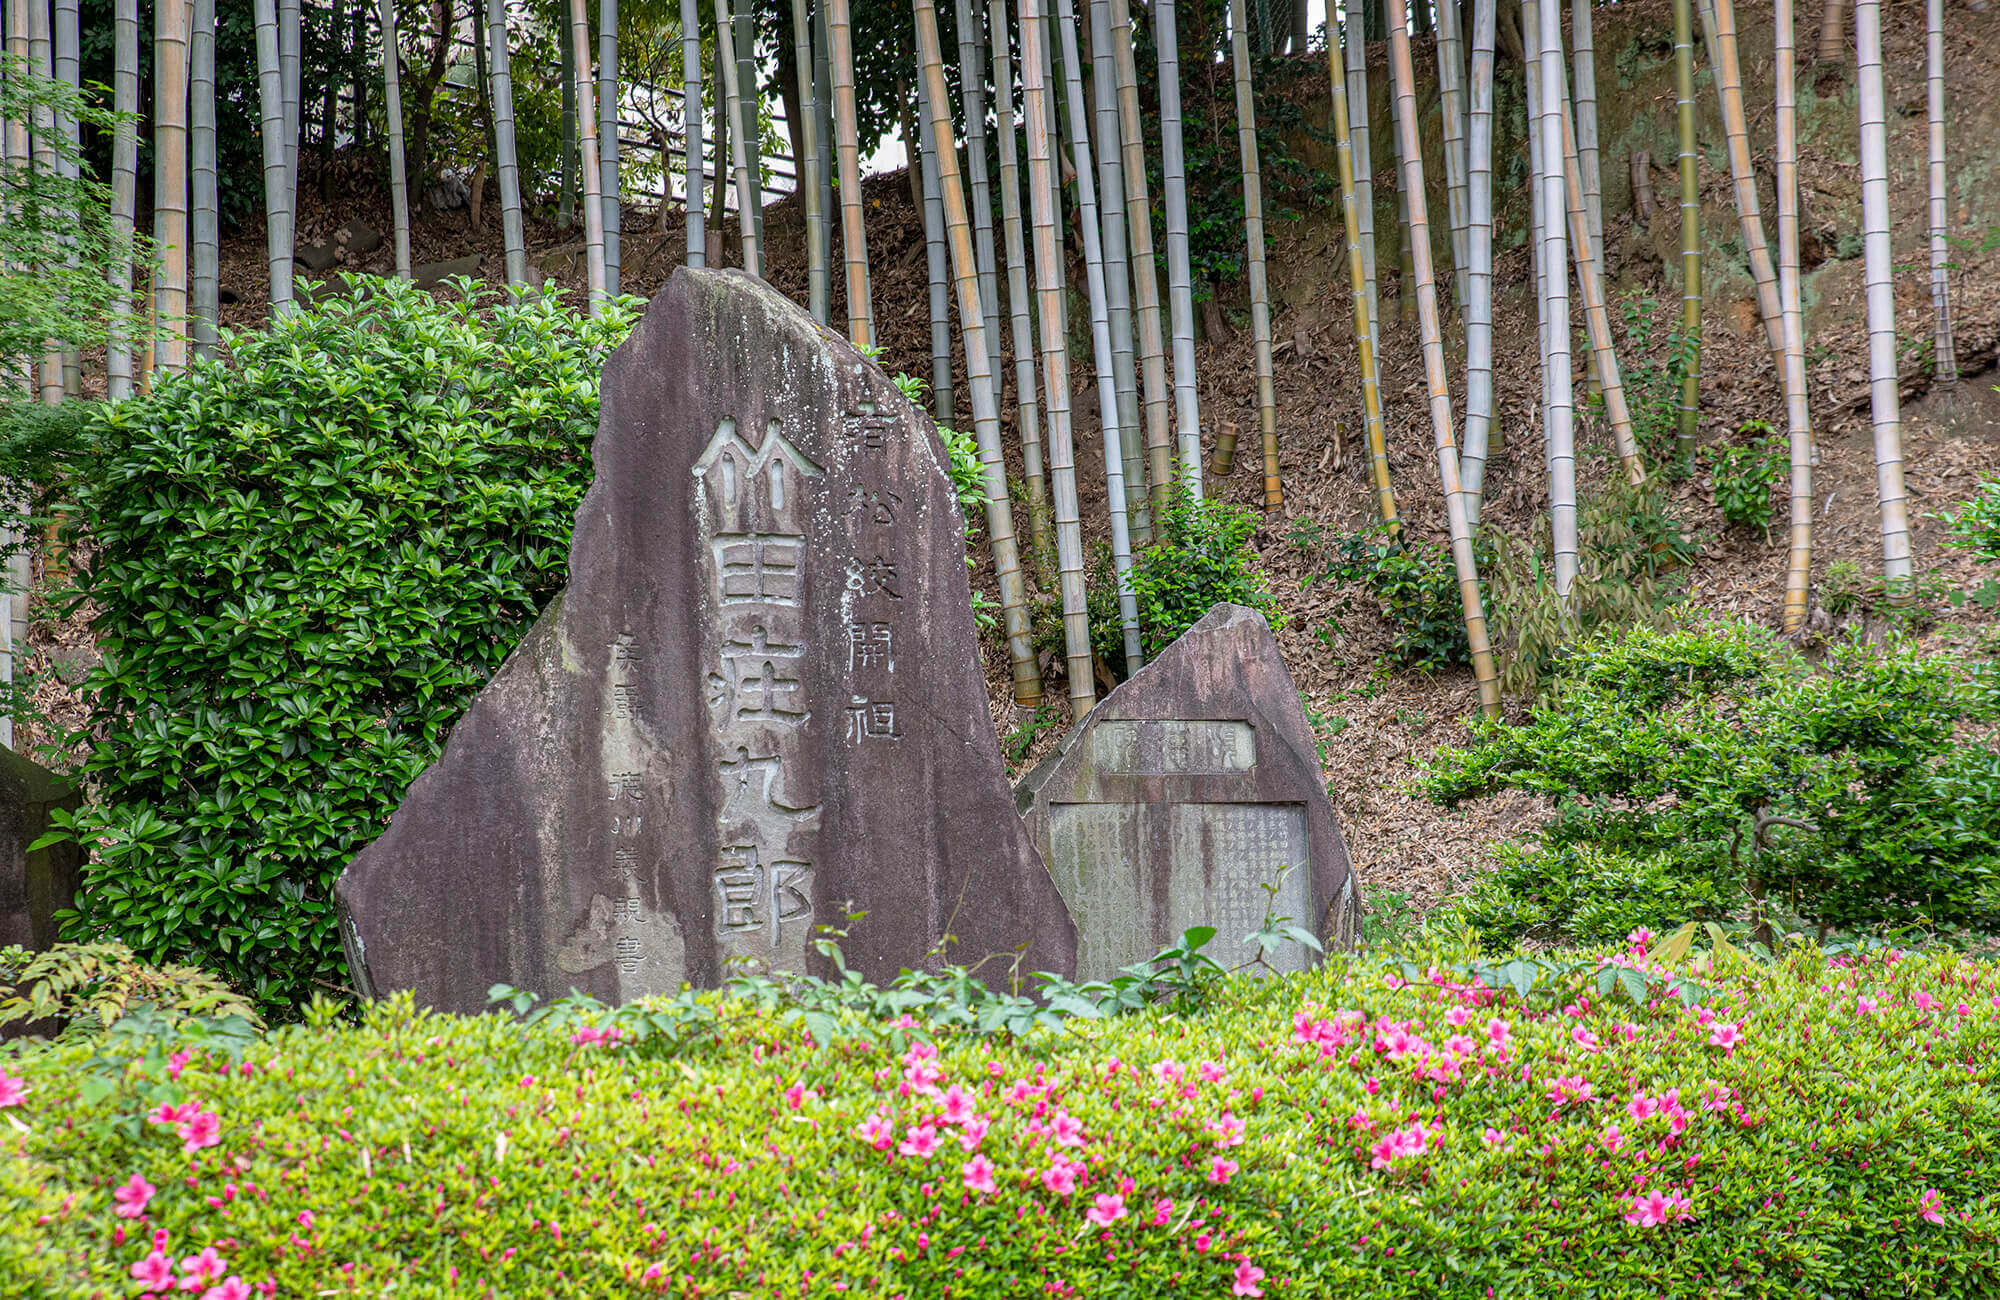 Shokuro Takeda memorial stone